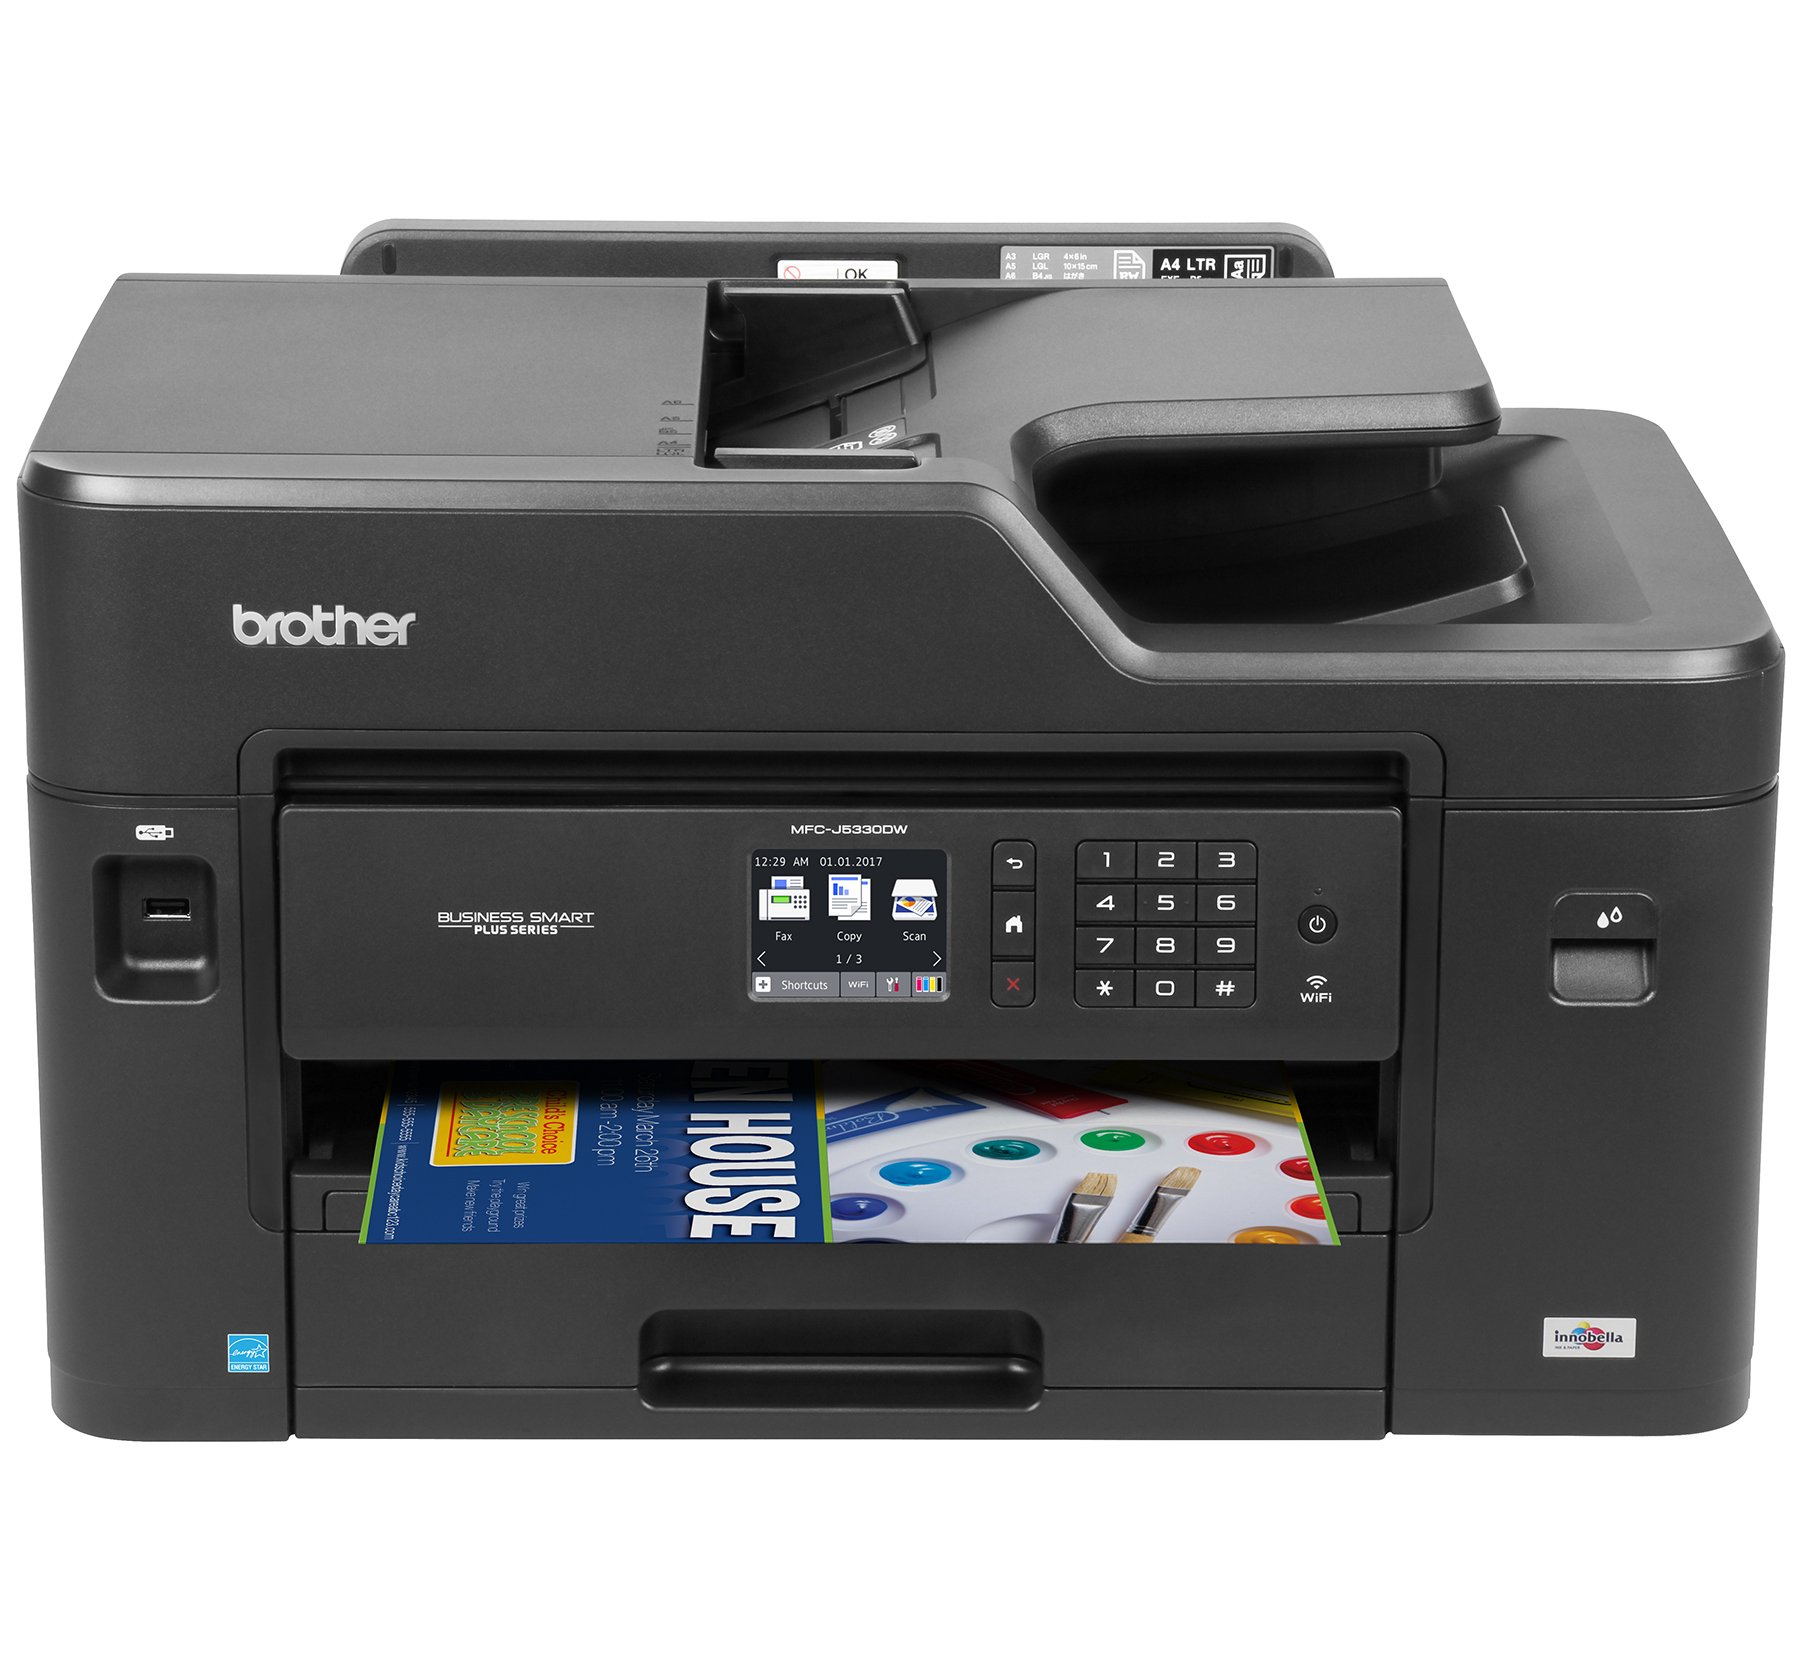 Brother MFC J5330DW Connectivity Automatic Replenishment